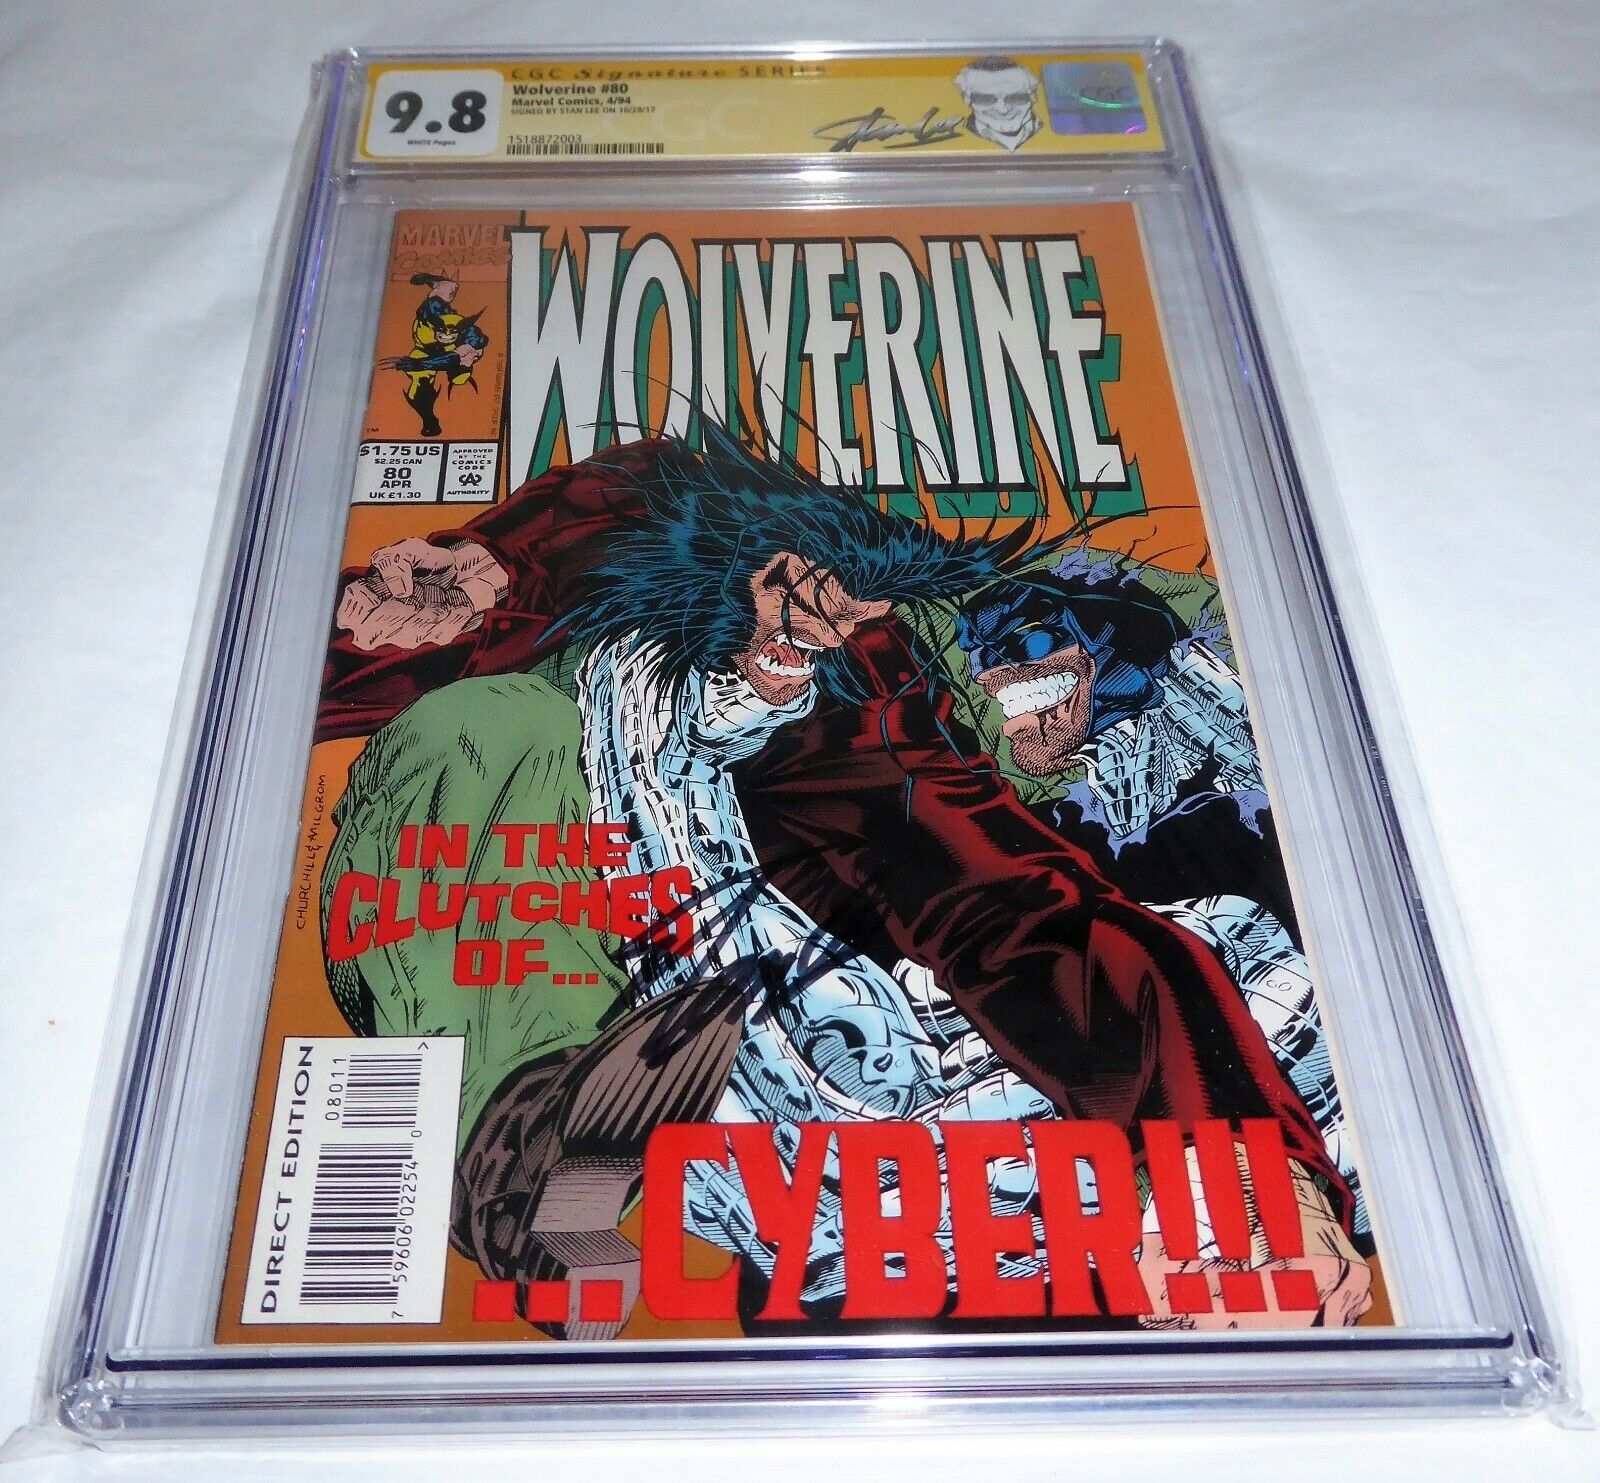 Wolverine #80 CGC SS 9.8 Signature Autograph STAN LEE Cyber Appearance Comic